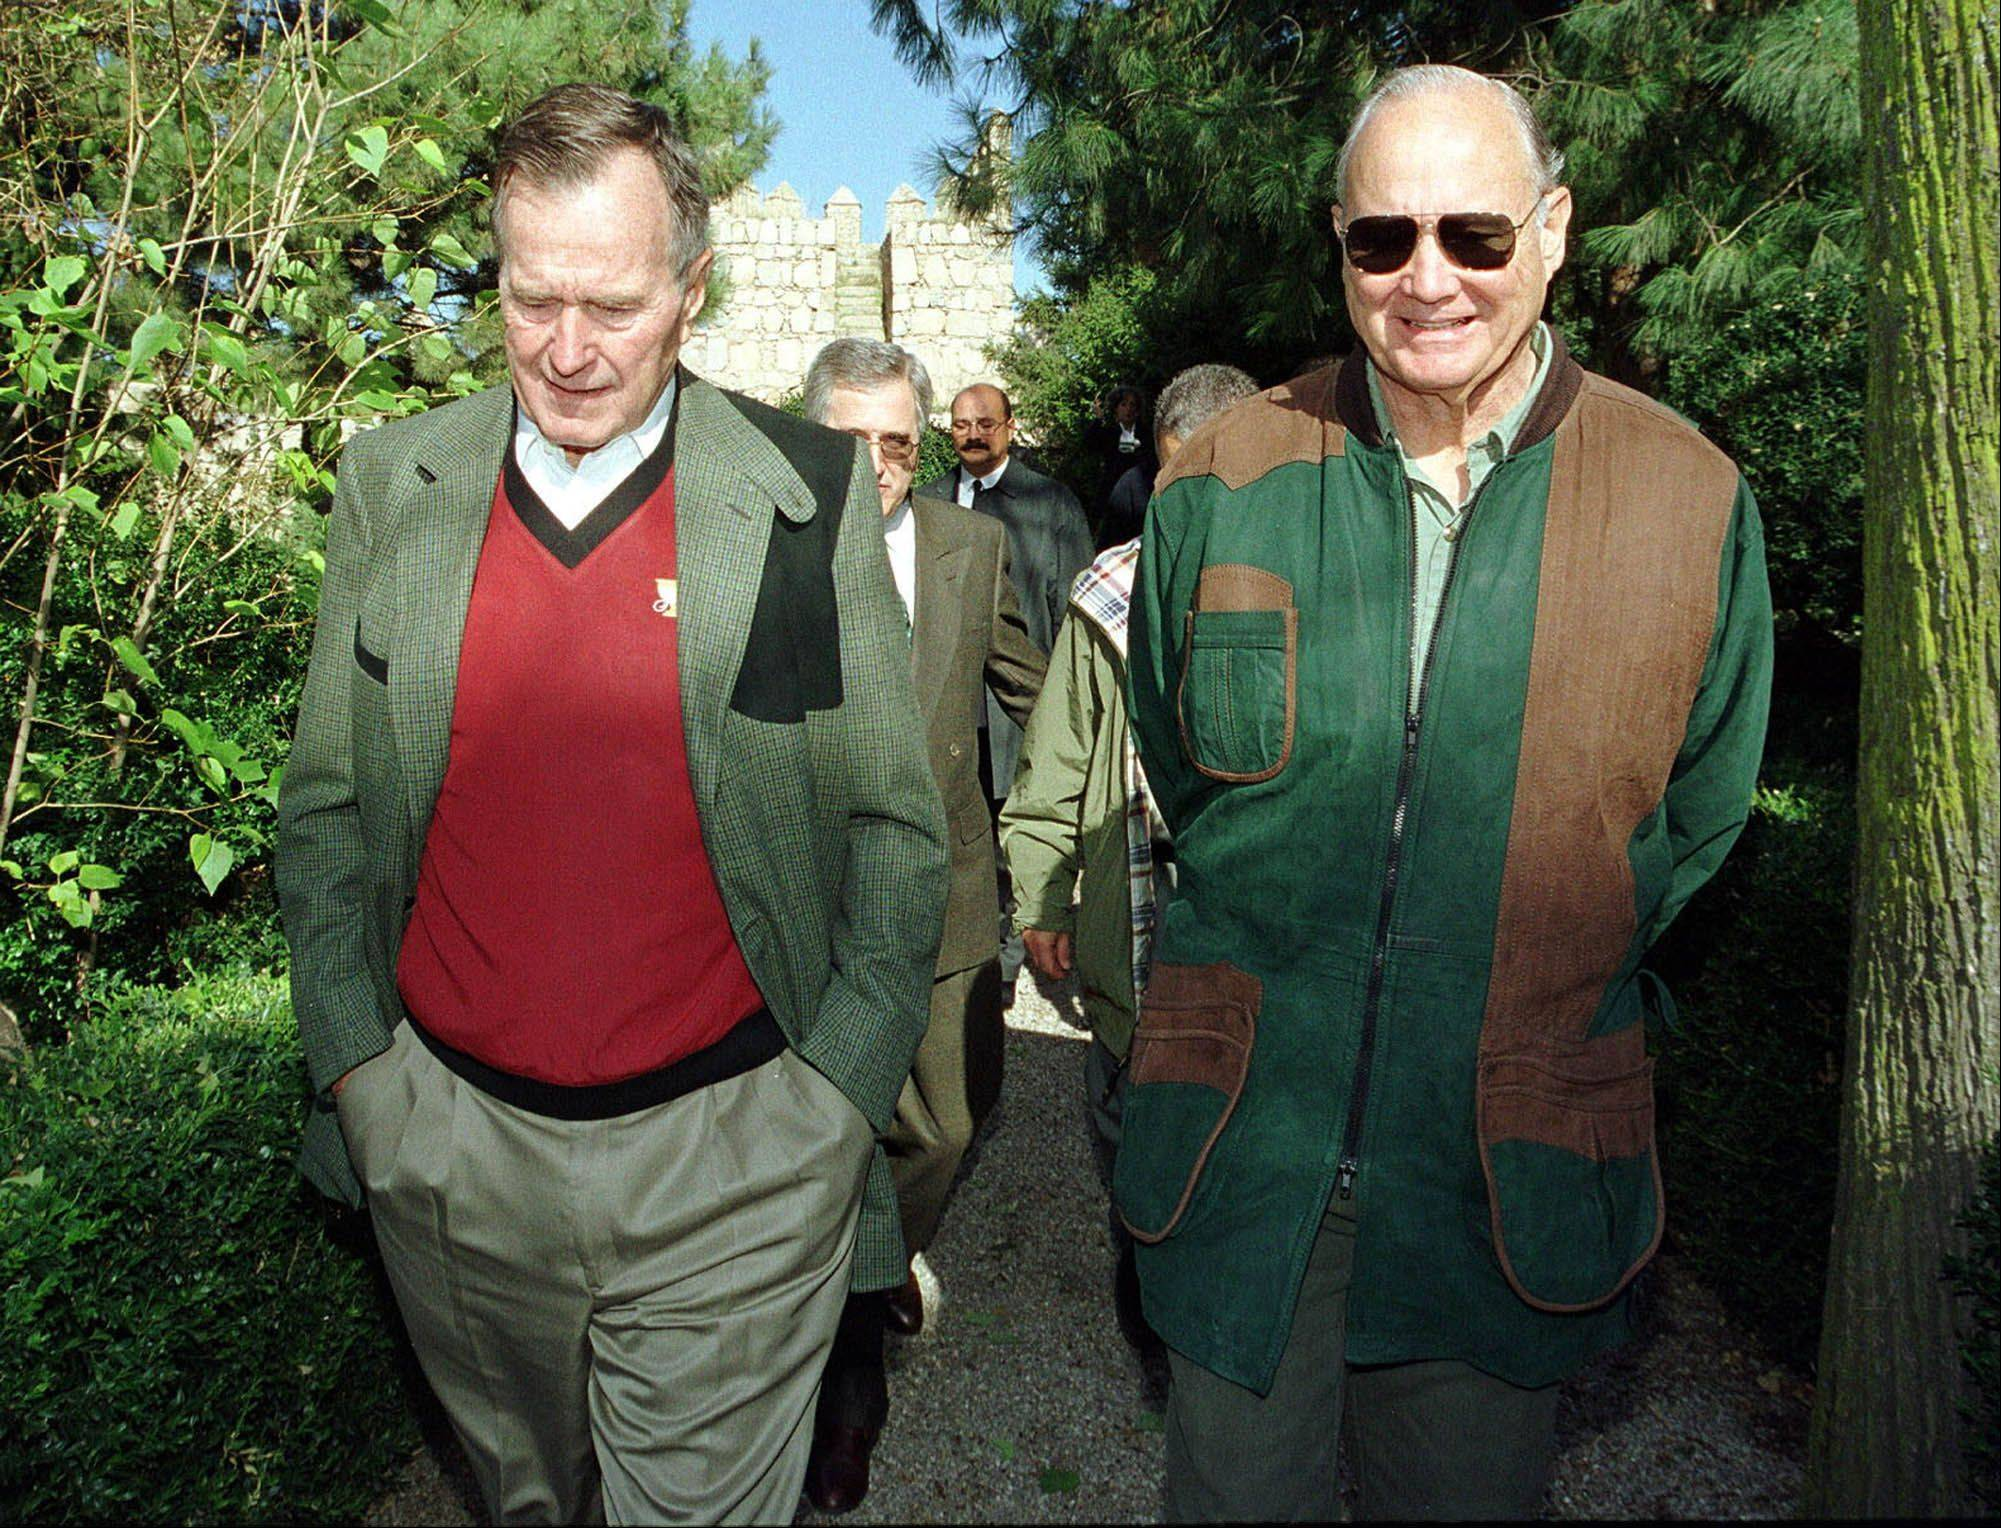 In this Nov. 11, 2000, file photo, former President George H.W. Bush, left, walks with retired Gen. Norman Schwarzkopf, right, in Avila, central Spain. Schwarzkopf died Thursday, Dec. 27, 2012 in Tampa, Fla. He was 78.